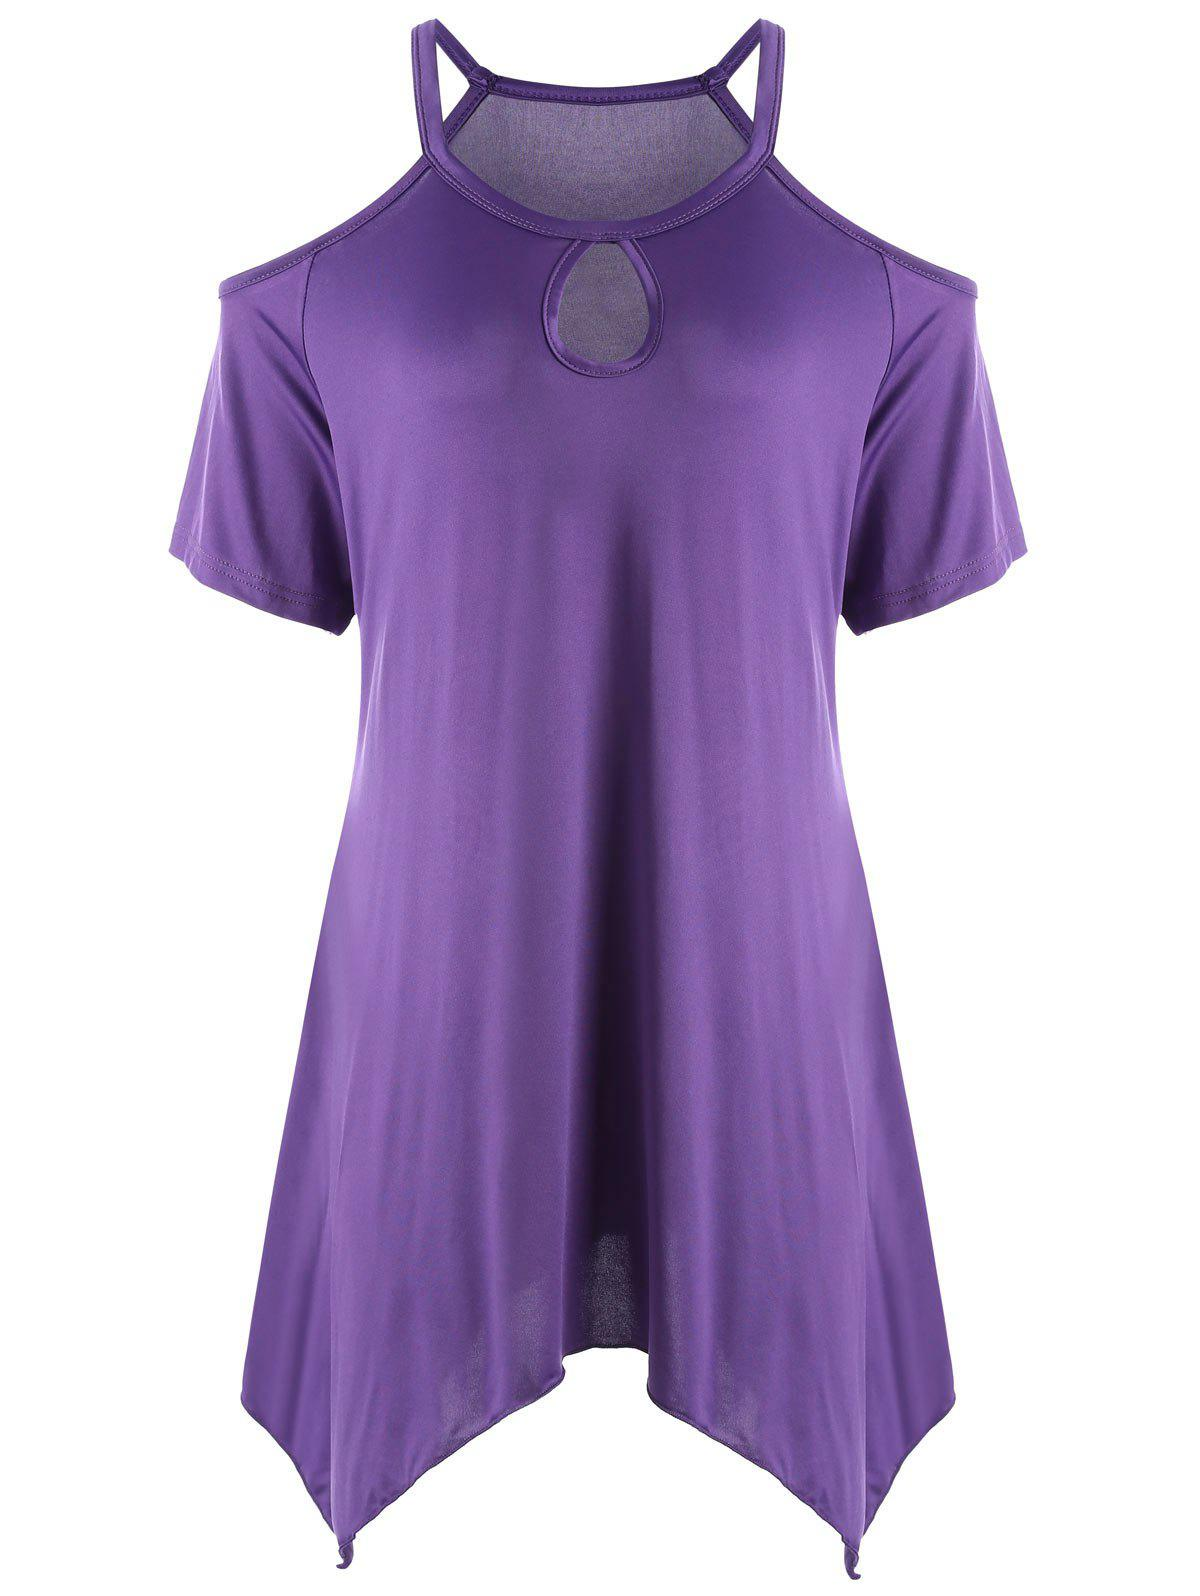 Keyhole Neck Cold Shoulder Plus Size Tunic TopWOMEN<br><br>Size: 5XL; Color: PURPLE; Material: Polyester; Shirt Length: Long; Sleeve Length: Short; Collar: Keyhole Neck; Style: Casual; Season: Summer; Pattern Type: Solid; Weight: 0.2200kg; Package Contents: 1 x Top;